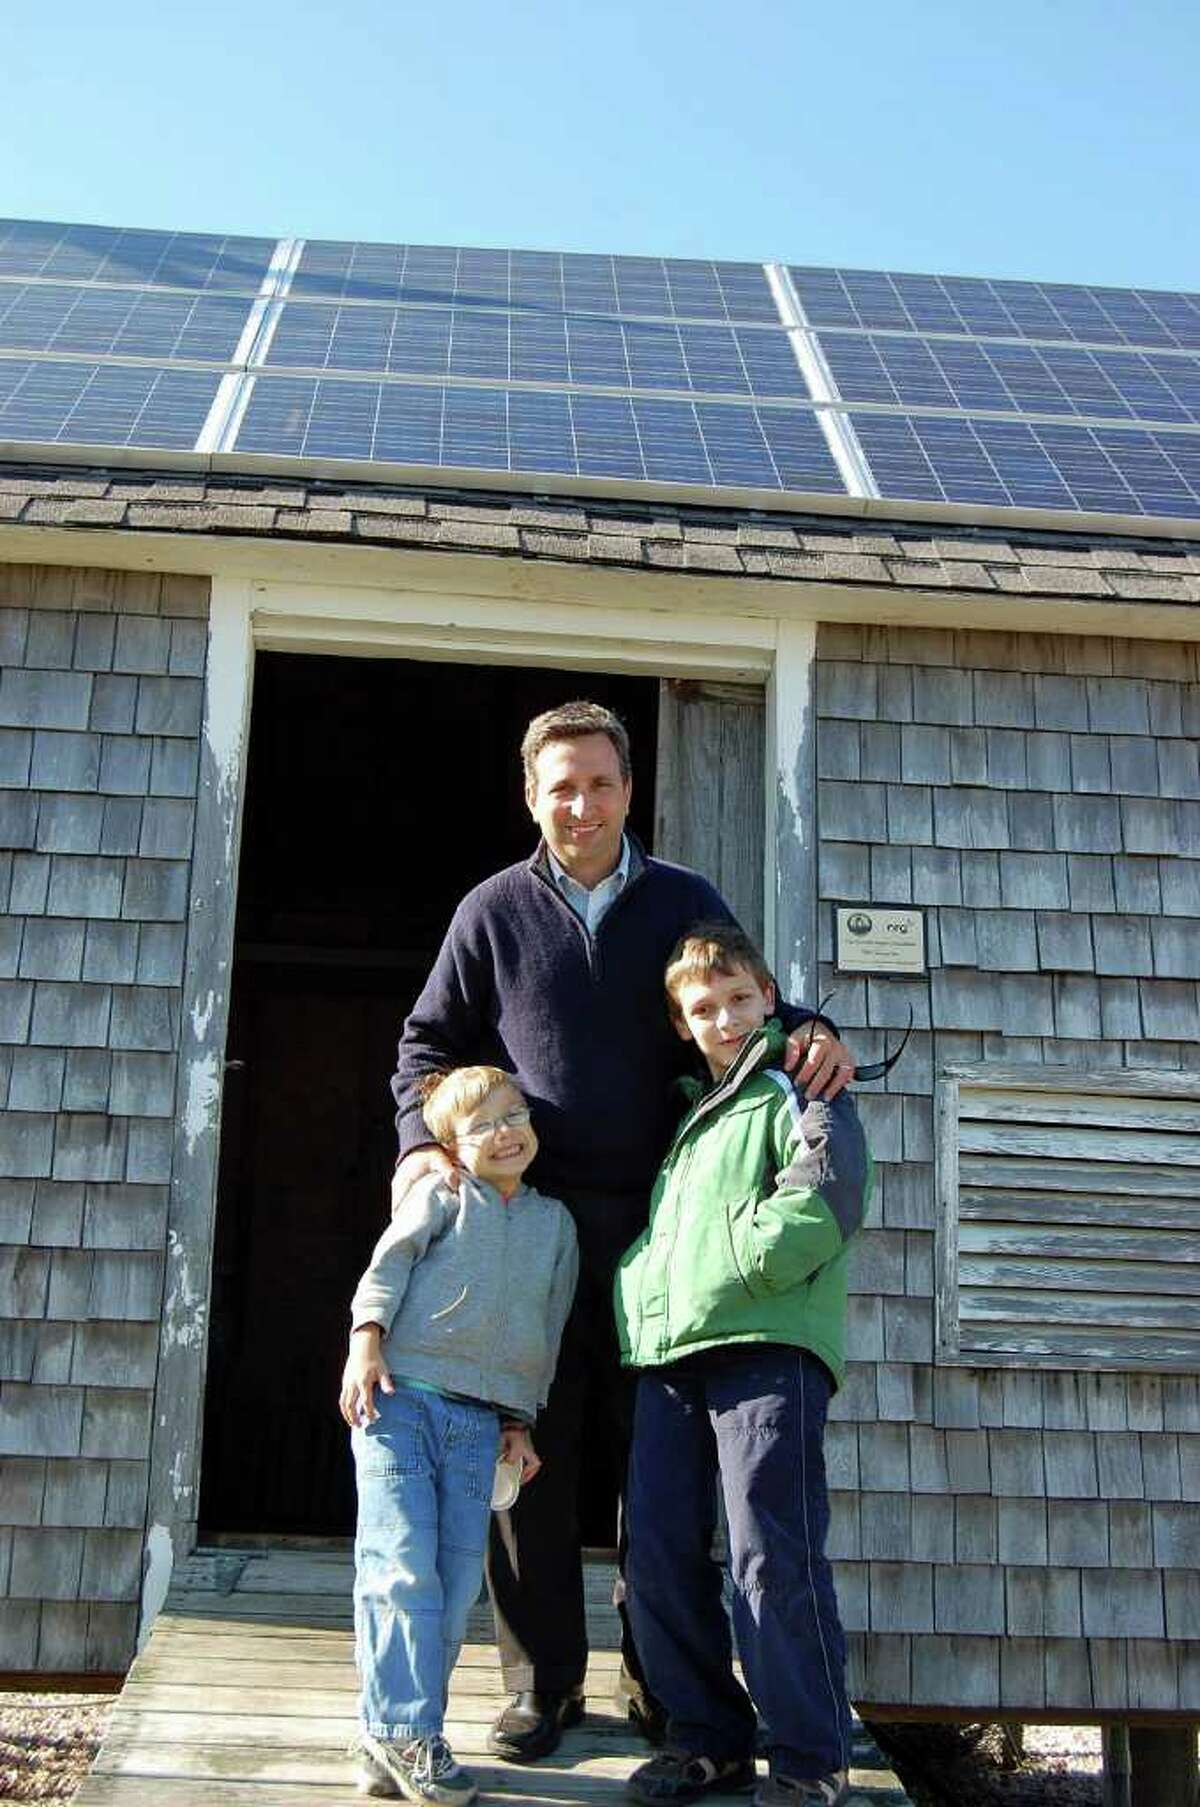 State Sen. Bob Duff (D-Norwalk) and his sons check out the building that houses the solar photovoltaic system, which includes 14 solar panels on its roof, donated by NRG Energy to power the island on Monday. It replaces gasoline-powered generators.